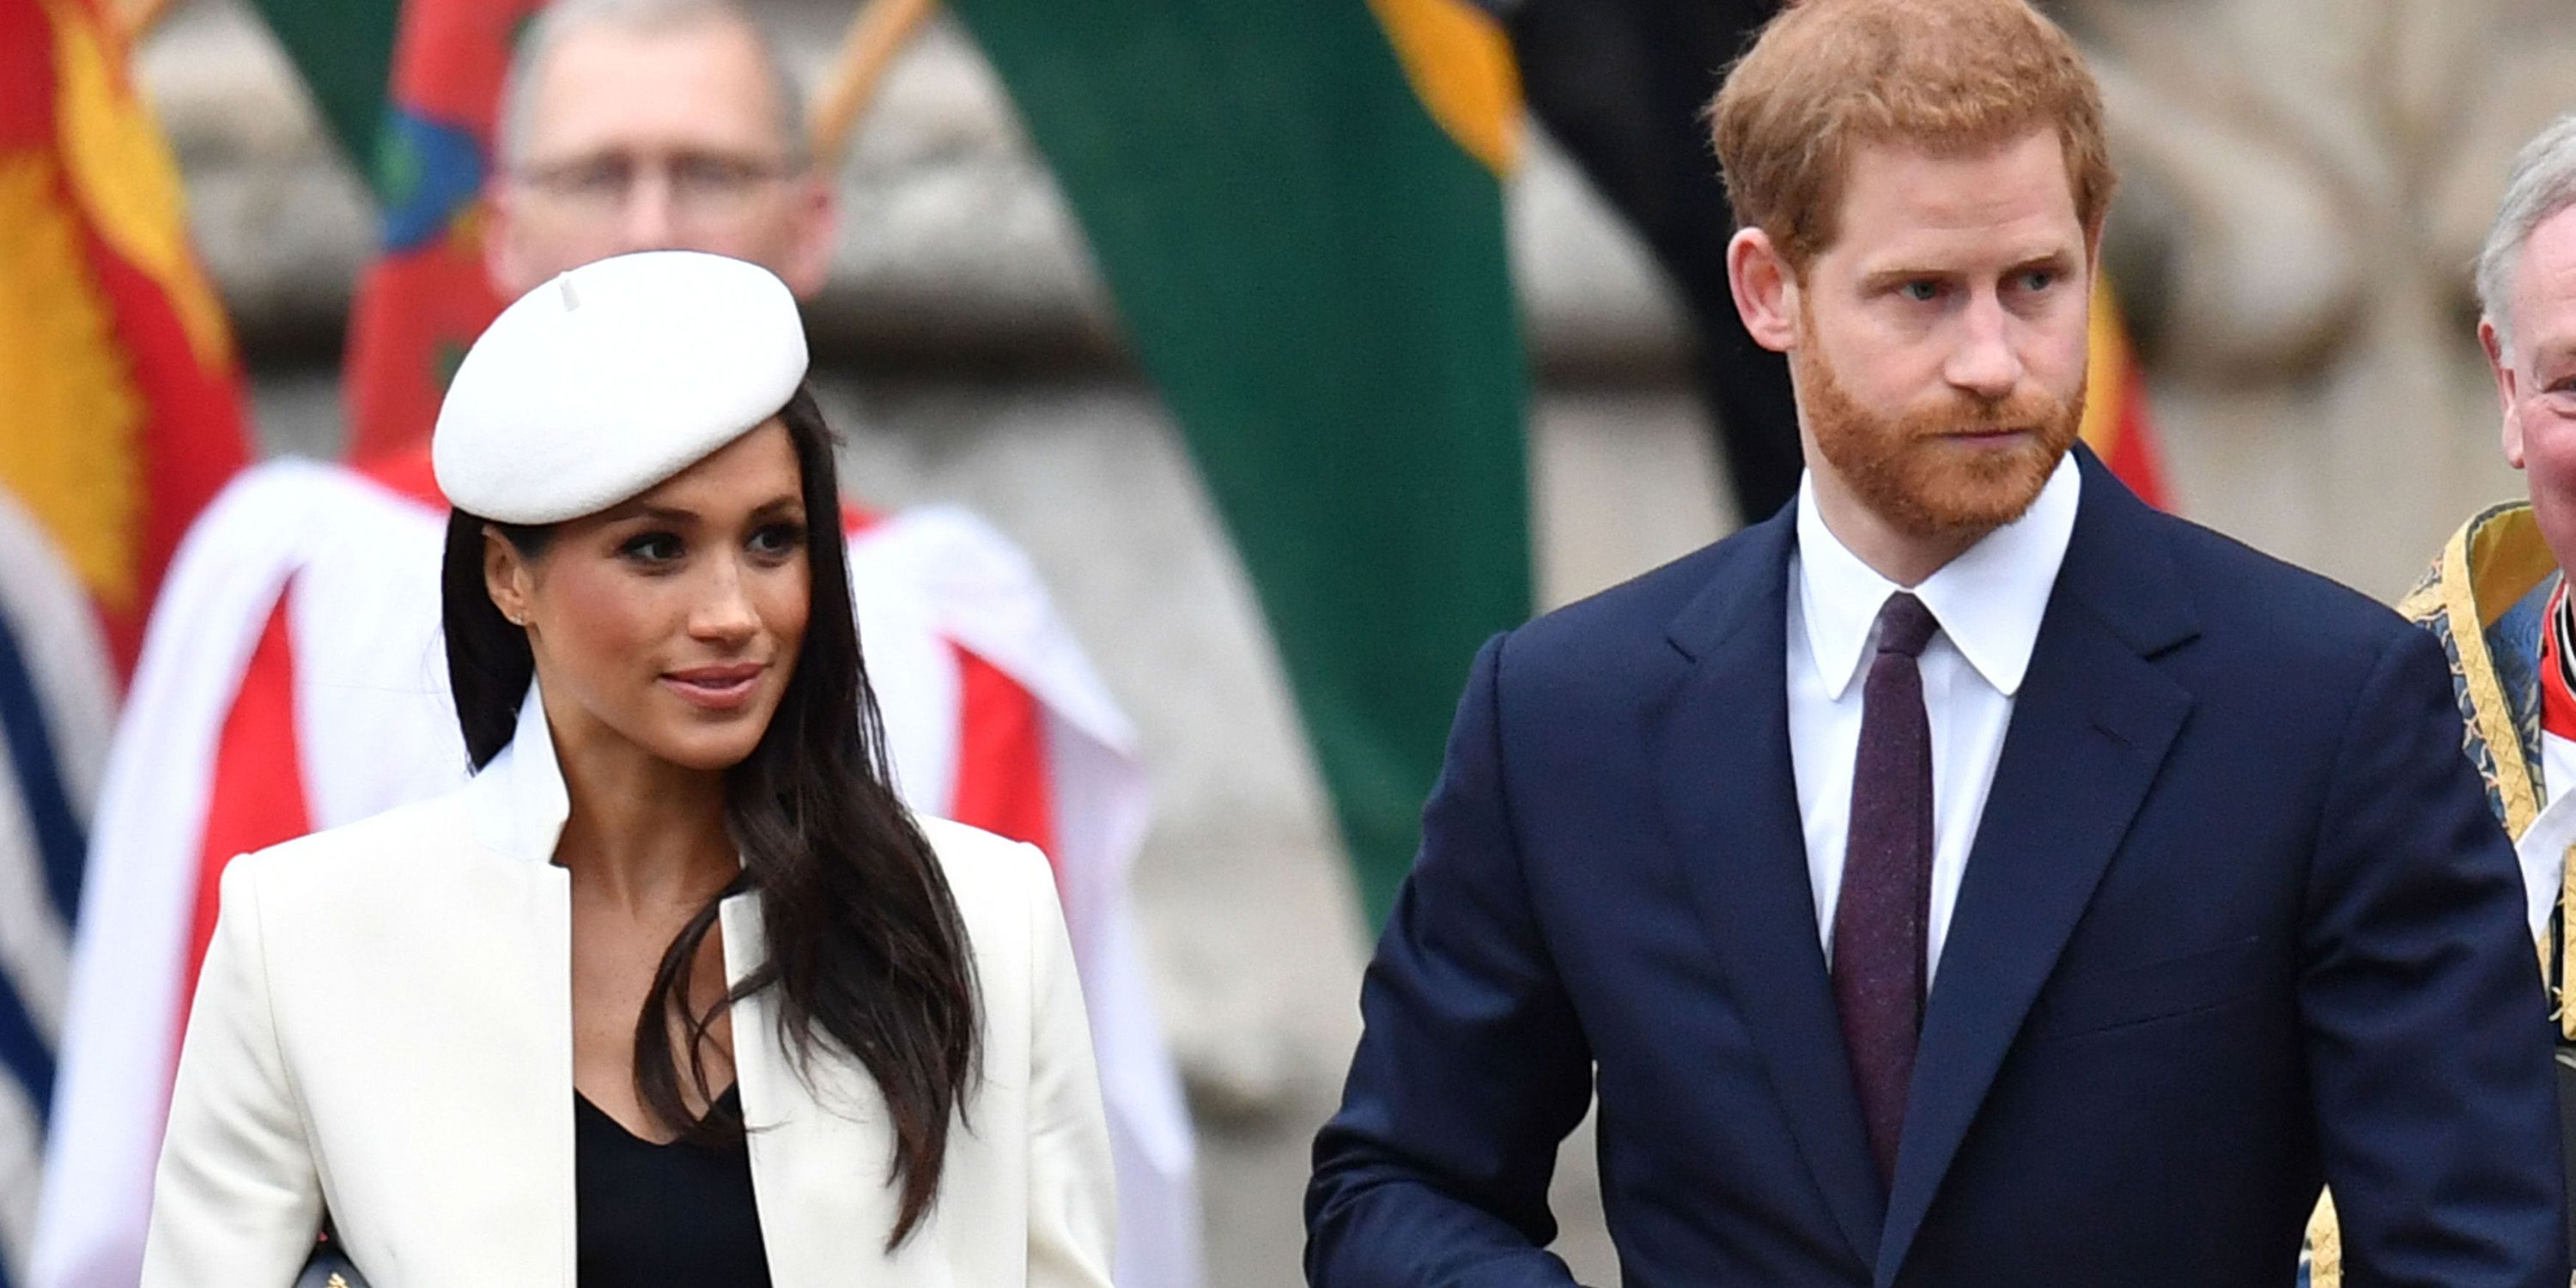 Kensington Palace Responds to Reports That Meghan Markles Dad Wont Be at the Royal Wedding